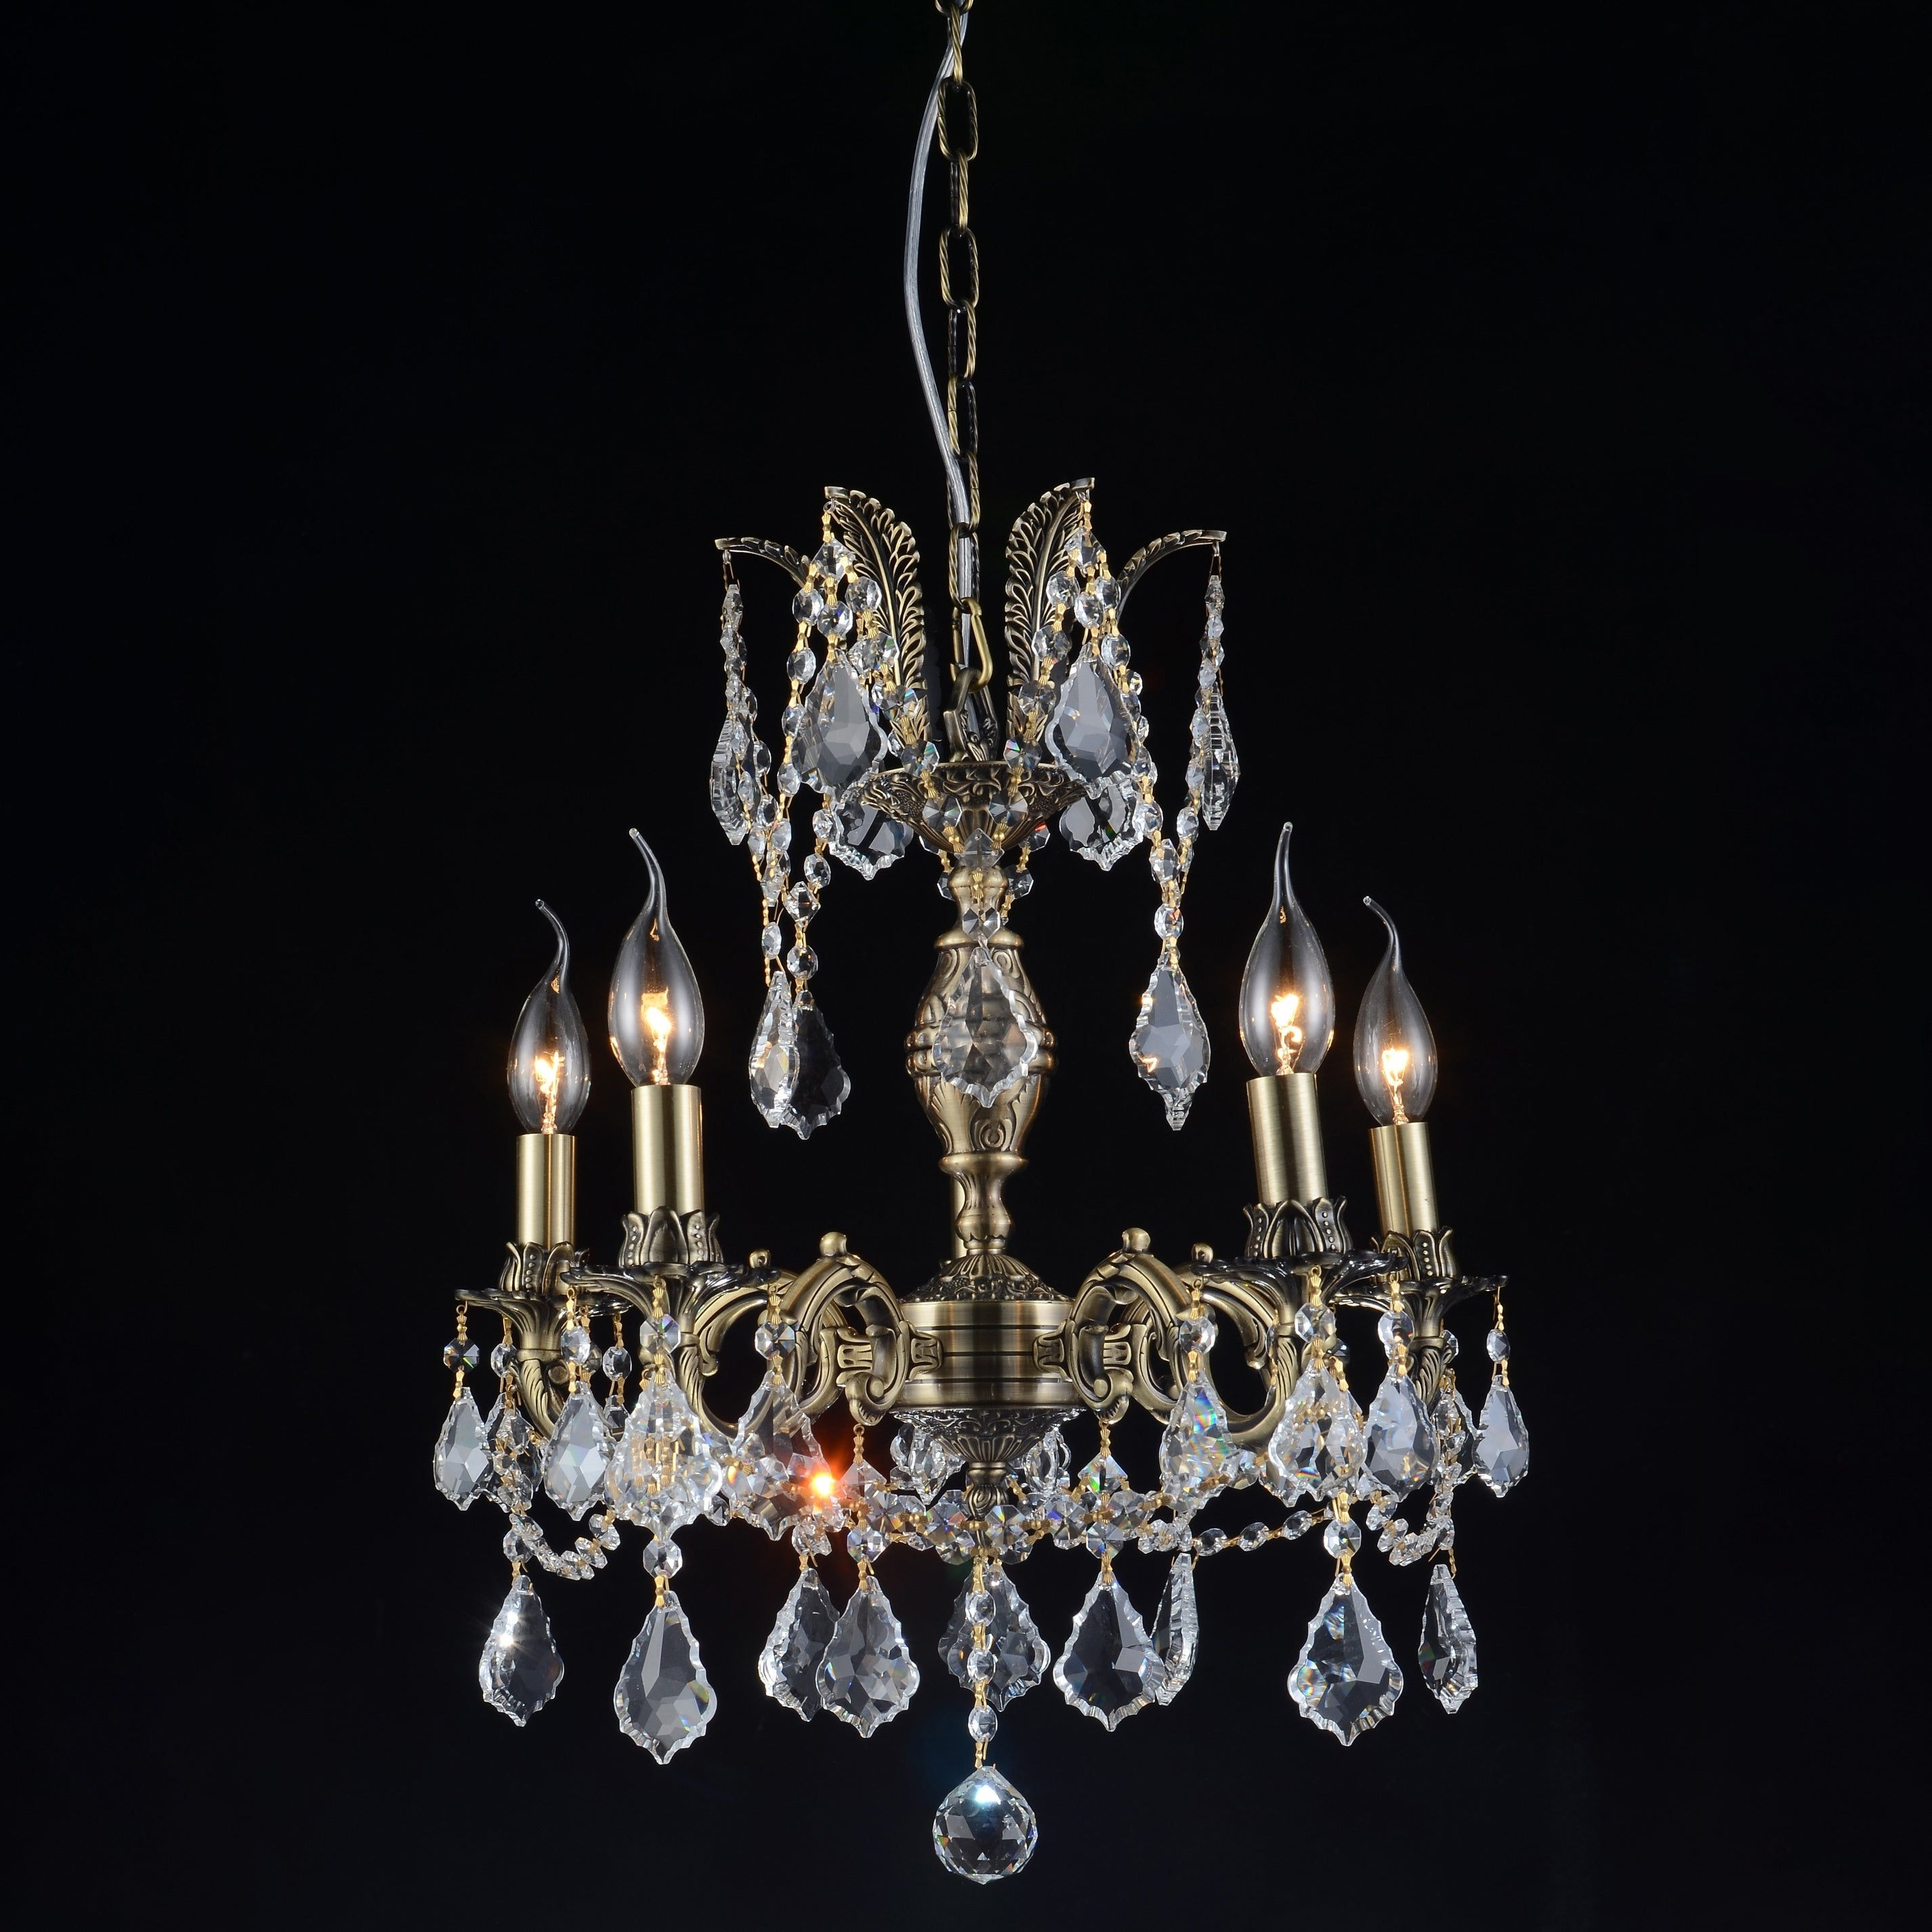 Shop Gracewood Hollow Zouankeu 5 Light Antique Brass Chandelier With Crystal Accents On Sale Overstock 22675610